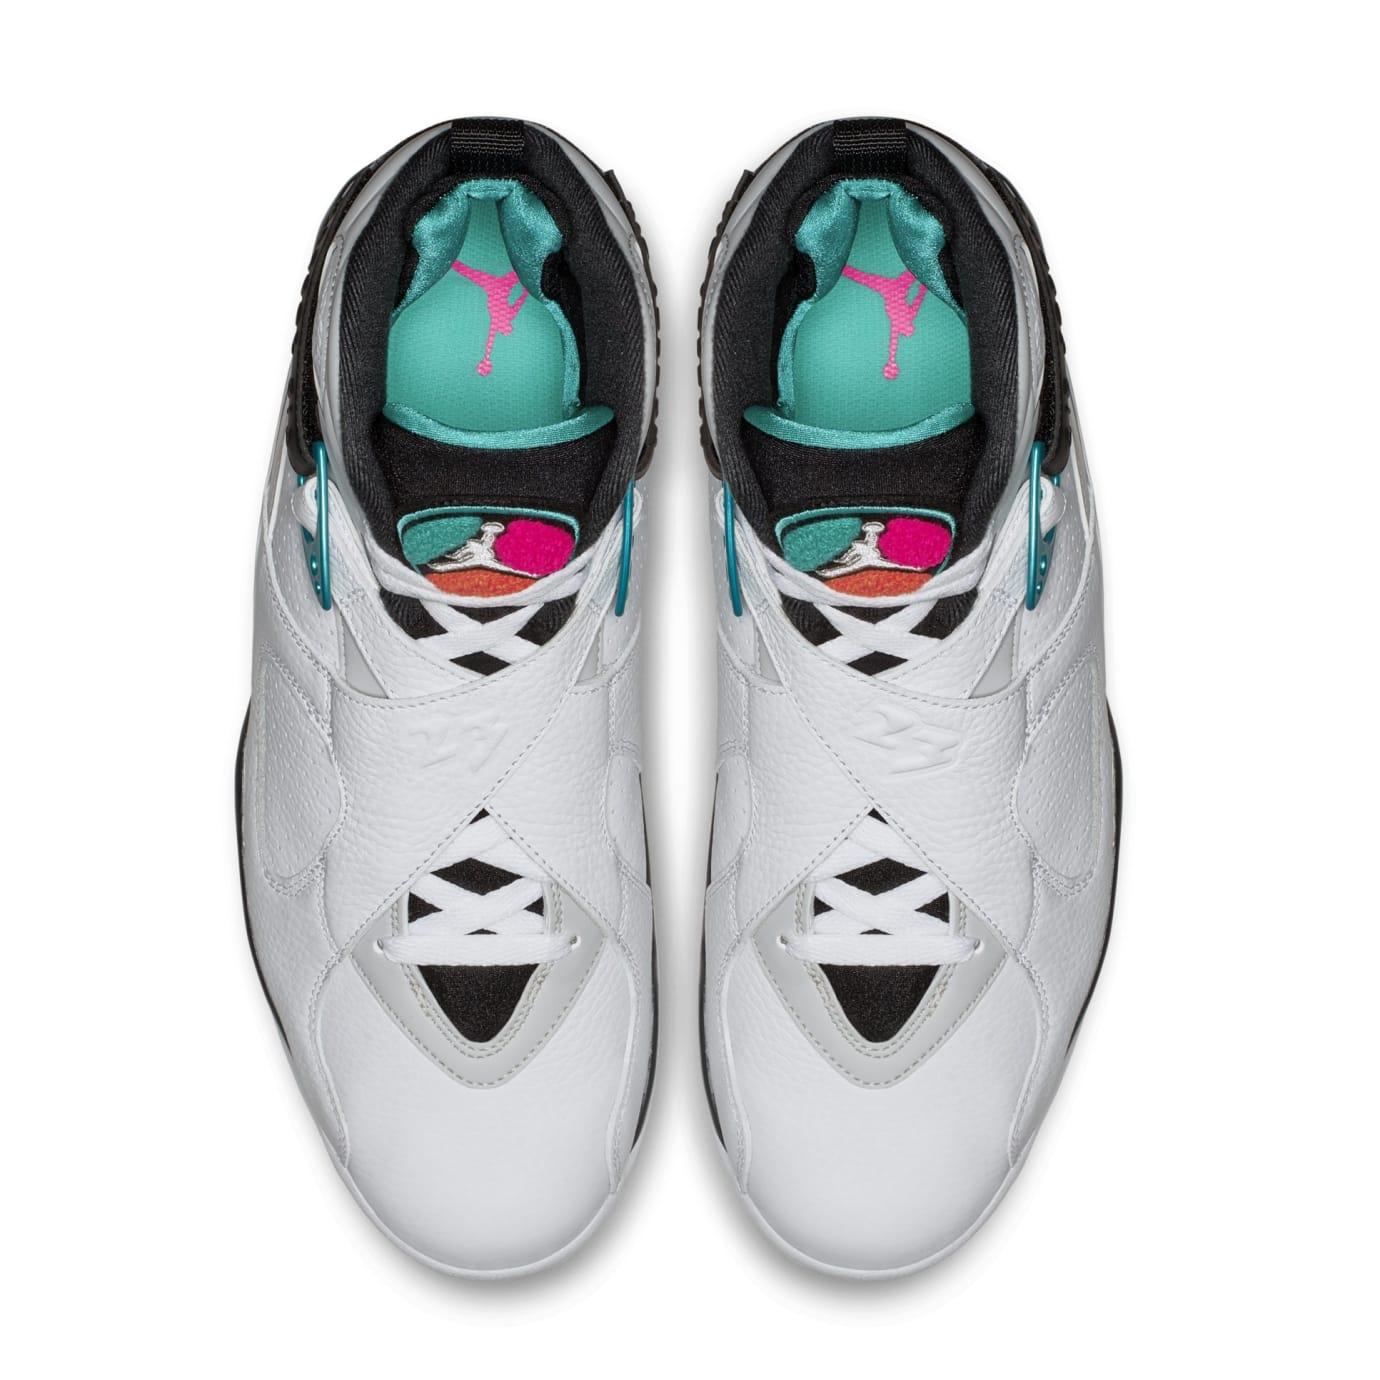 204132e76e4 Air Jordan 8 VIII South Beach Release Date 305381-113